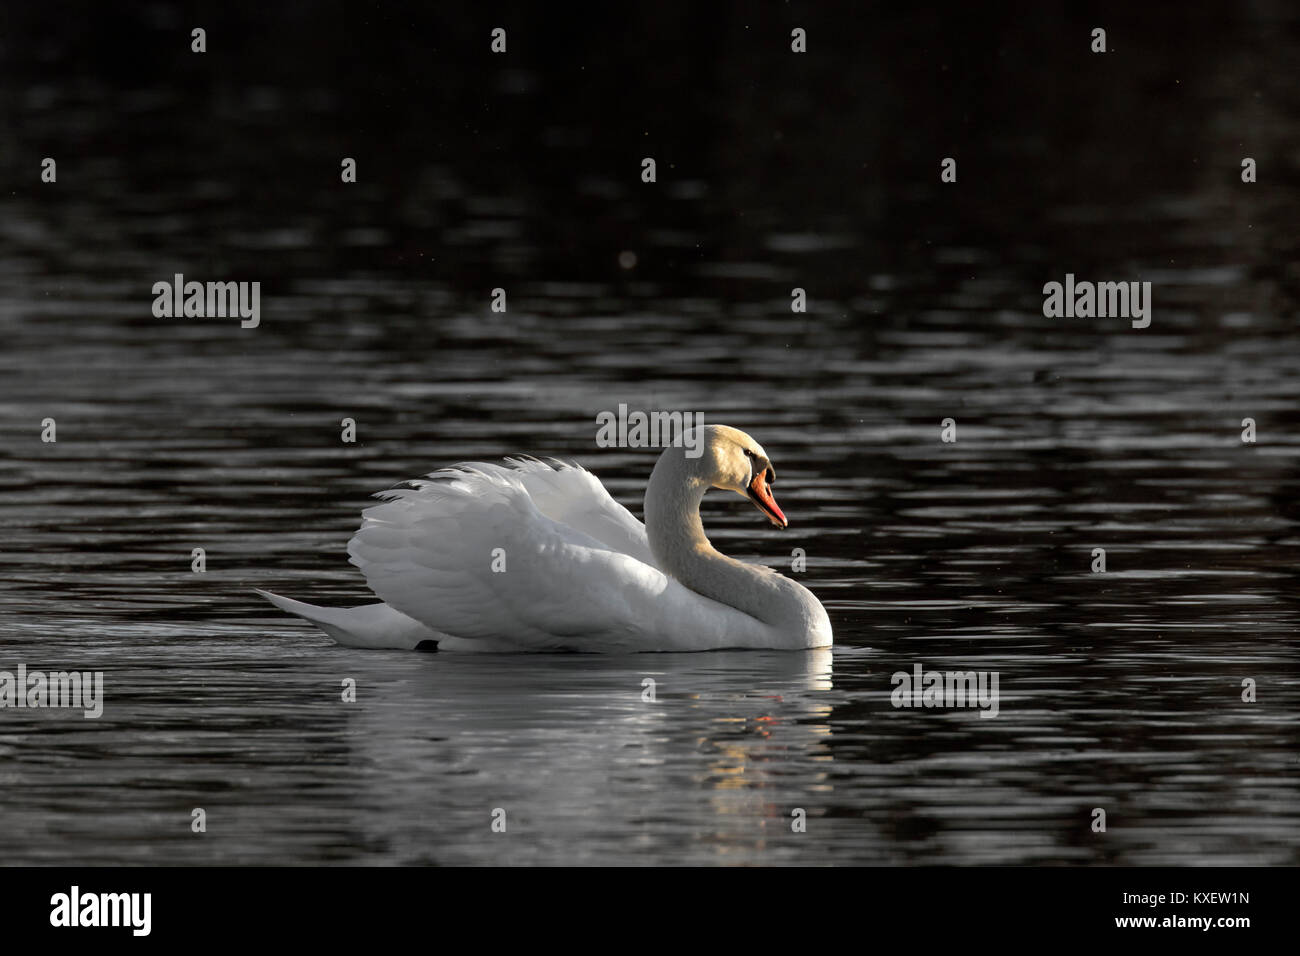 Territorial mute swan (Cygnus olor) male swimming in lake while showing dominant aggressive posture in spring - Stock Image